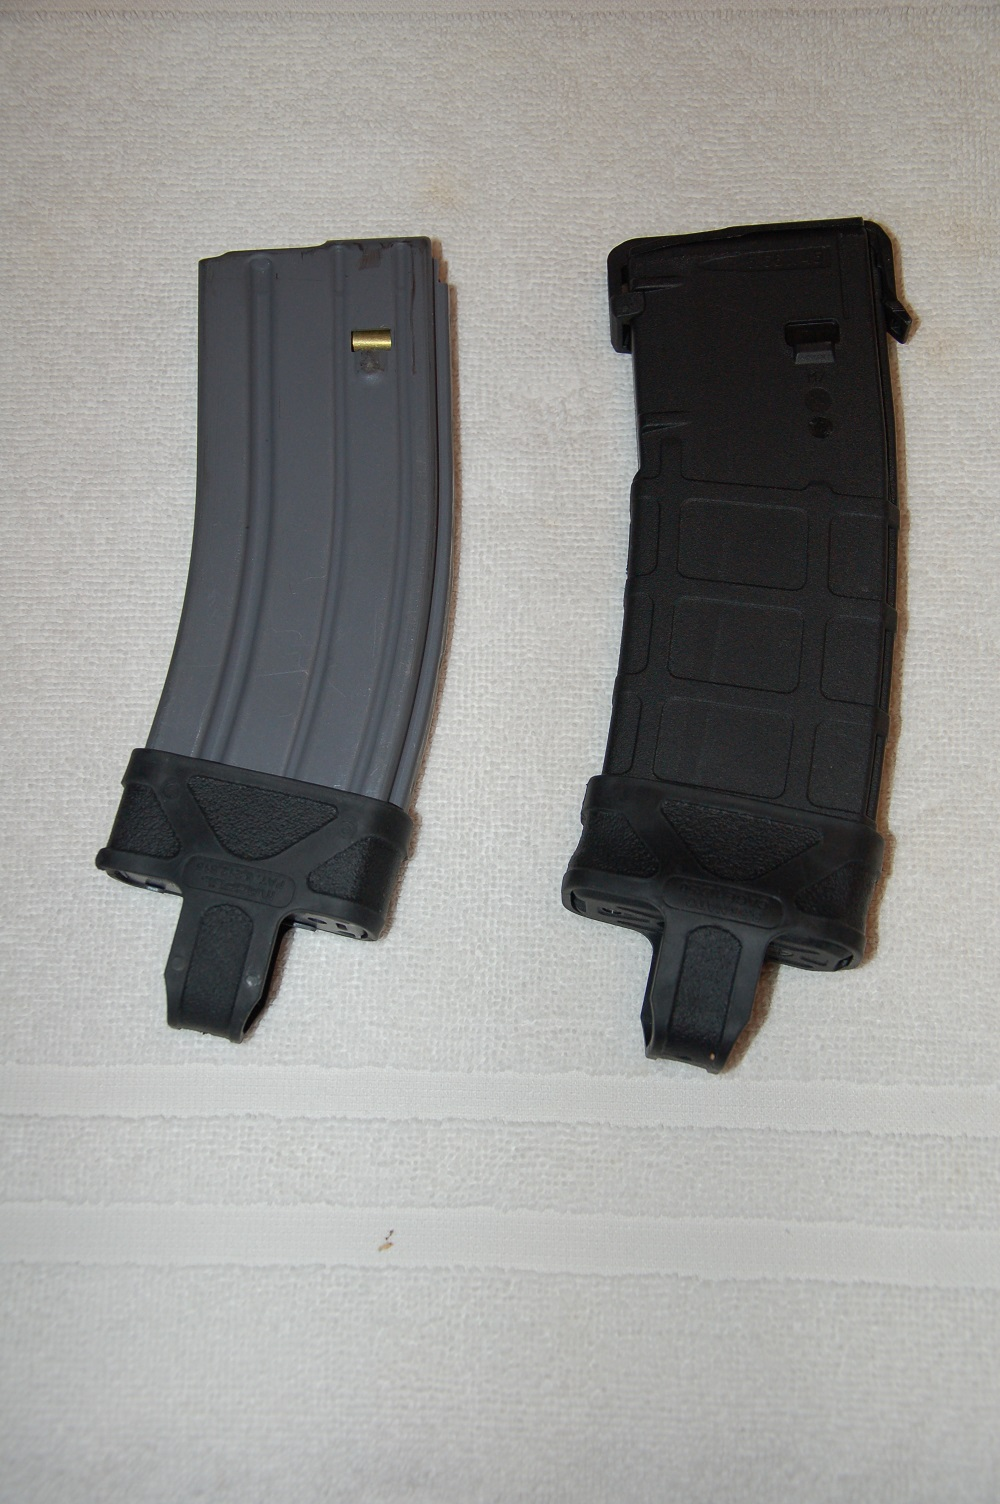 AR Mags – Metal or Plastic?